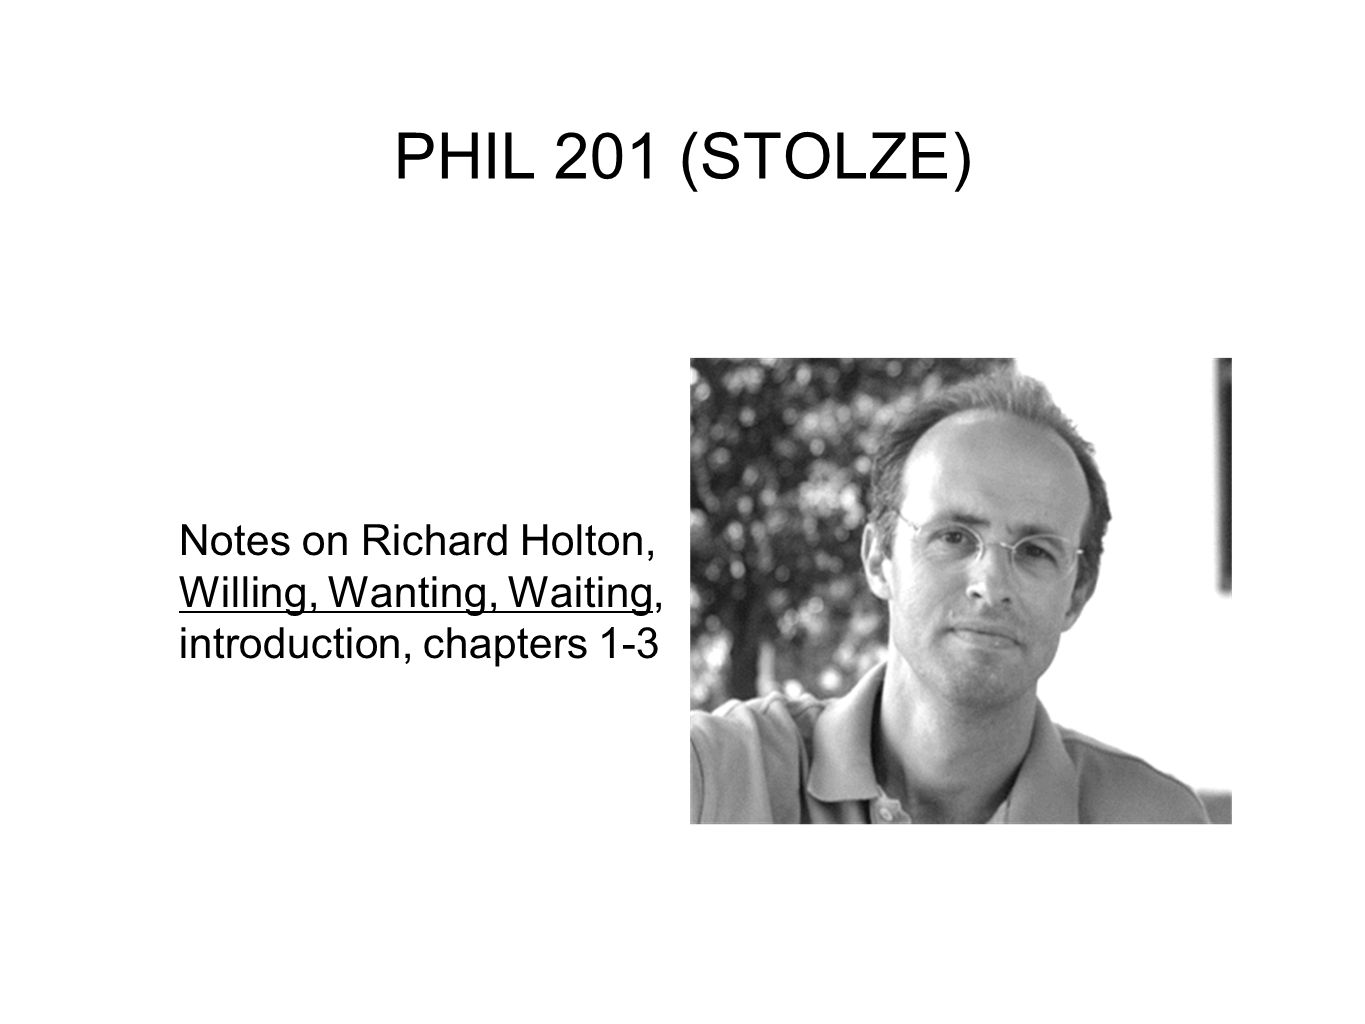 PHIL 201 (STOLZE) Notes on Richard Holton, Willing, Wanting, Waiting, introduction, chapters 1-3